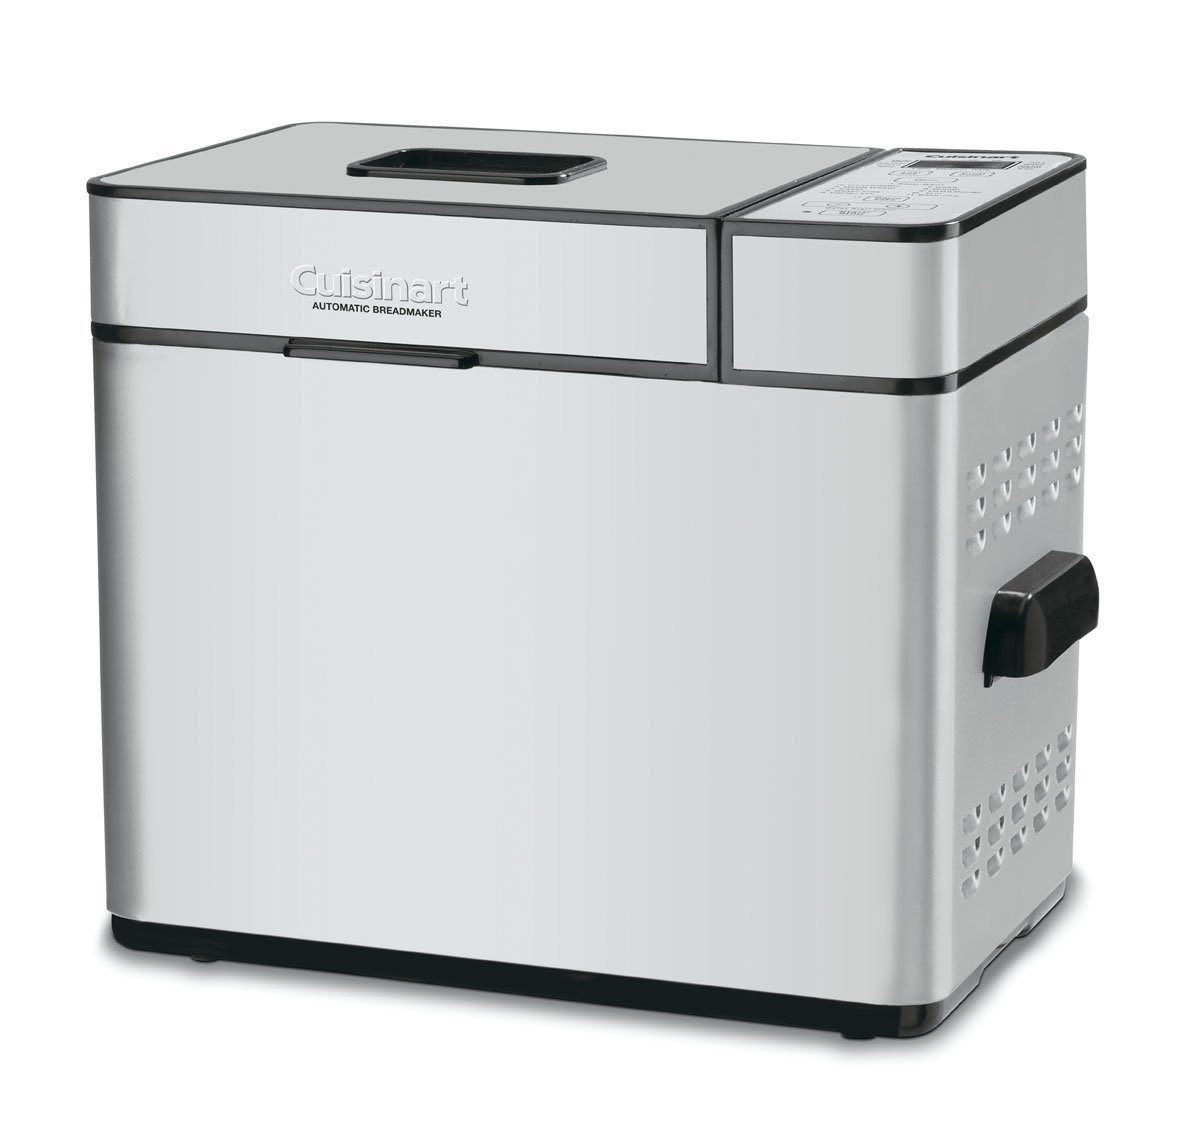 Cuisinart Fully Automatic Compact Bread Maker